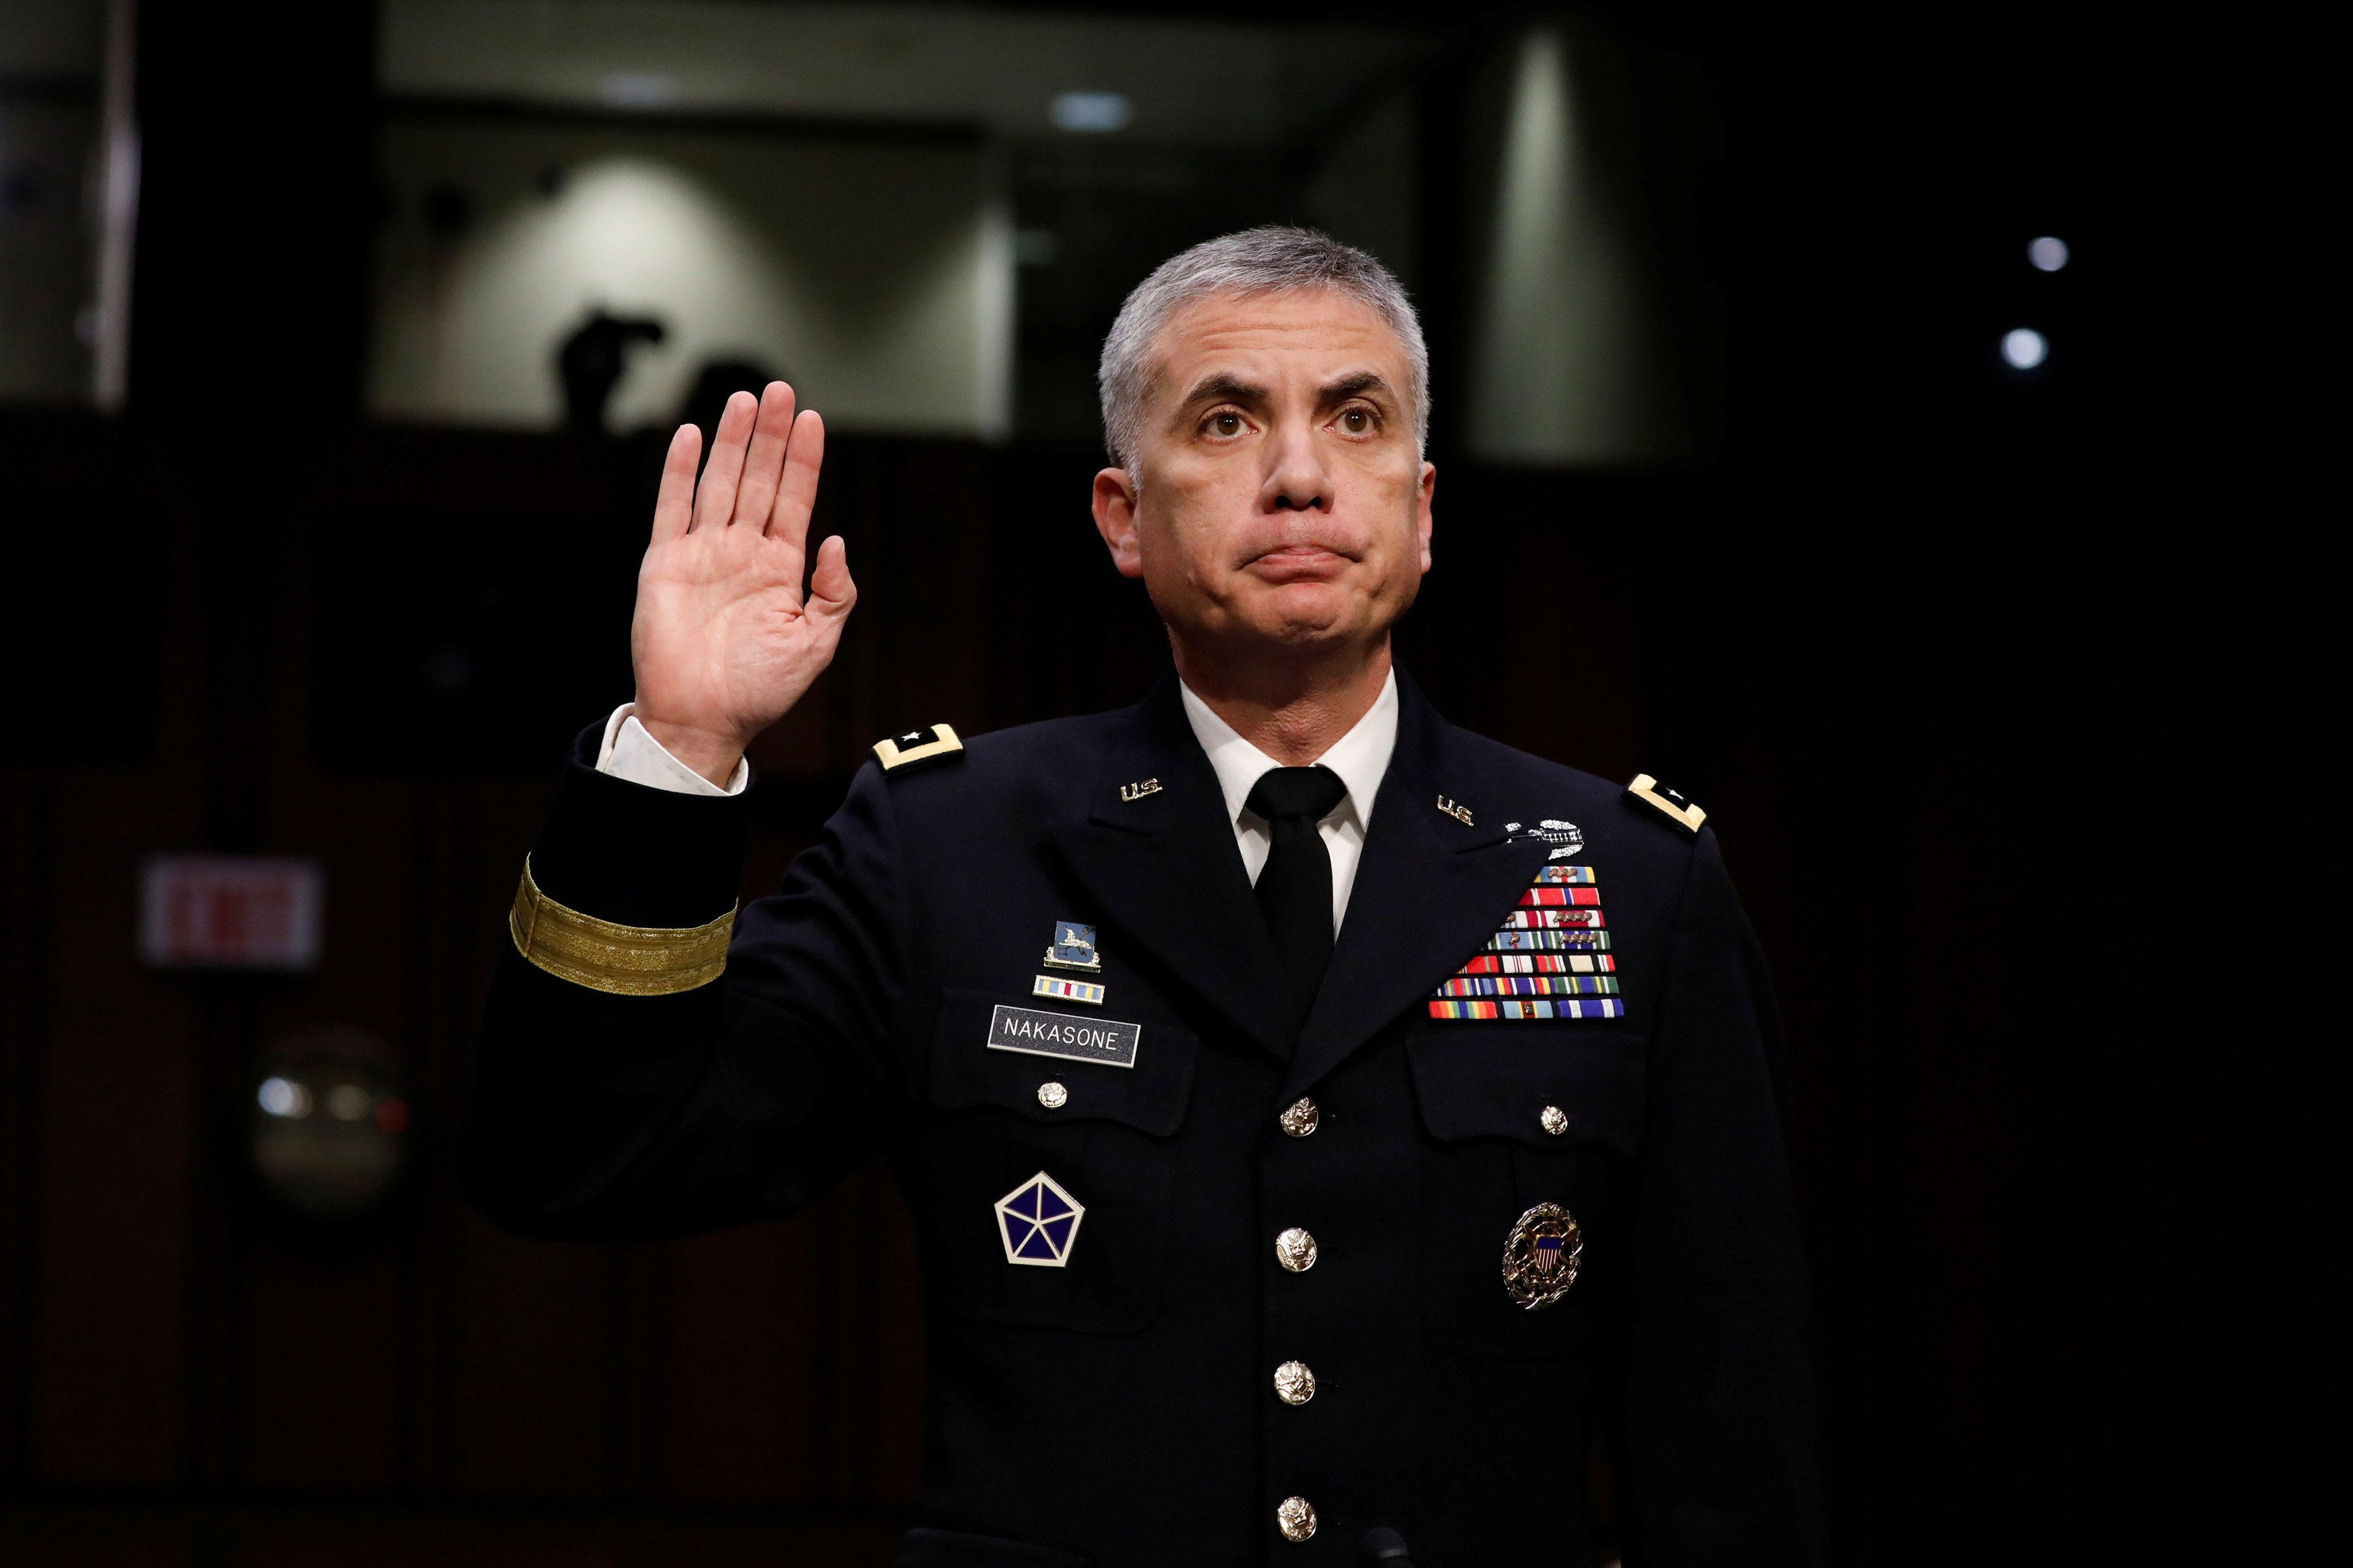 Army Lieutenant General Paul Nakasone, who was confirmed on Tuesday to lead the U.S. Cyber Command and National Security